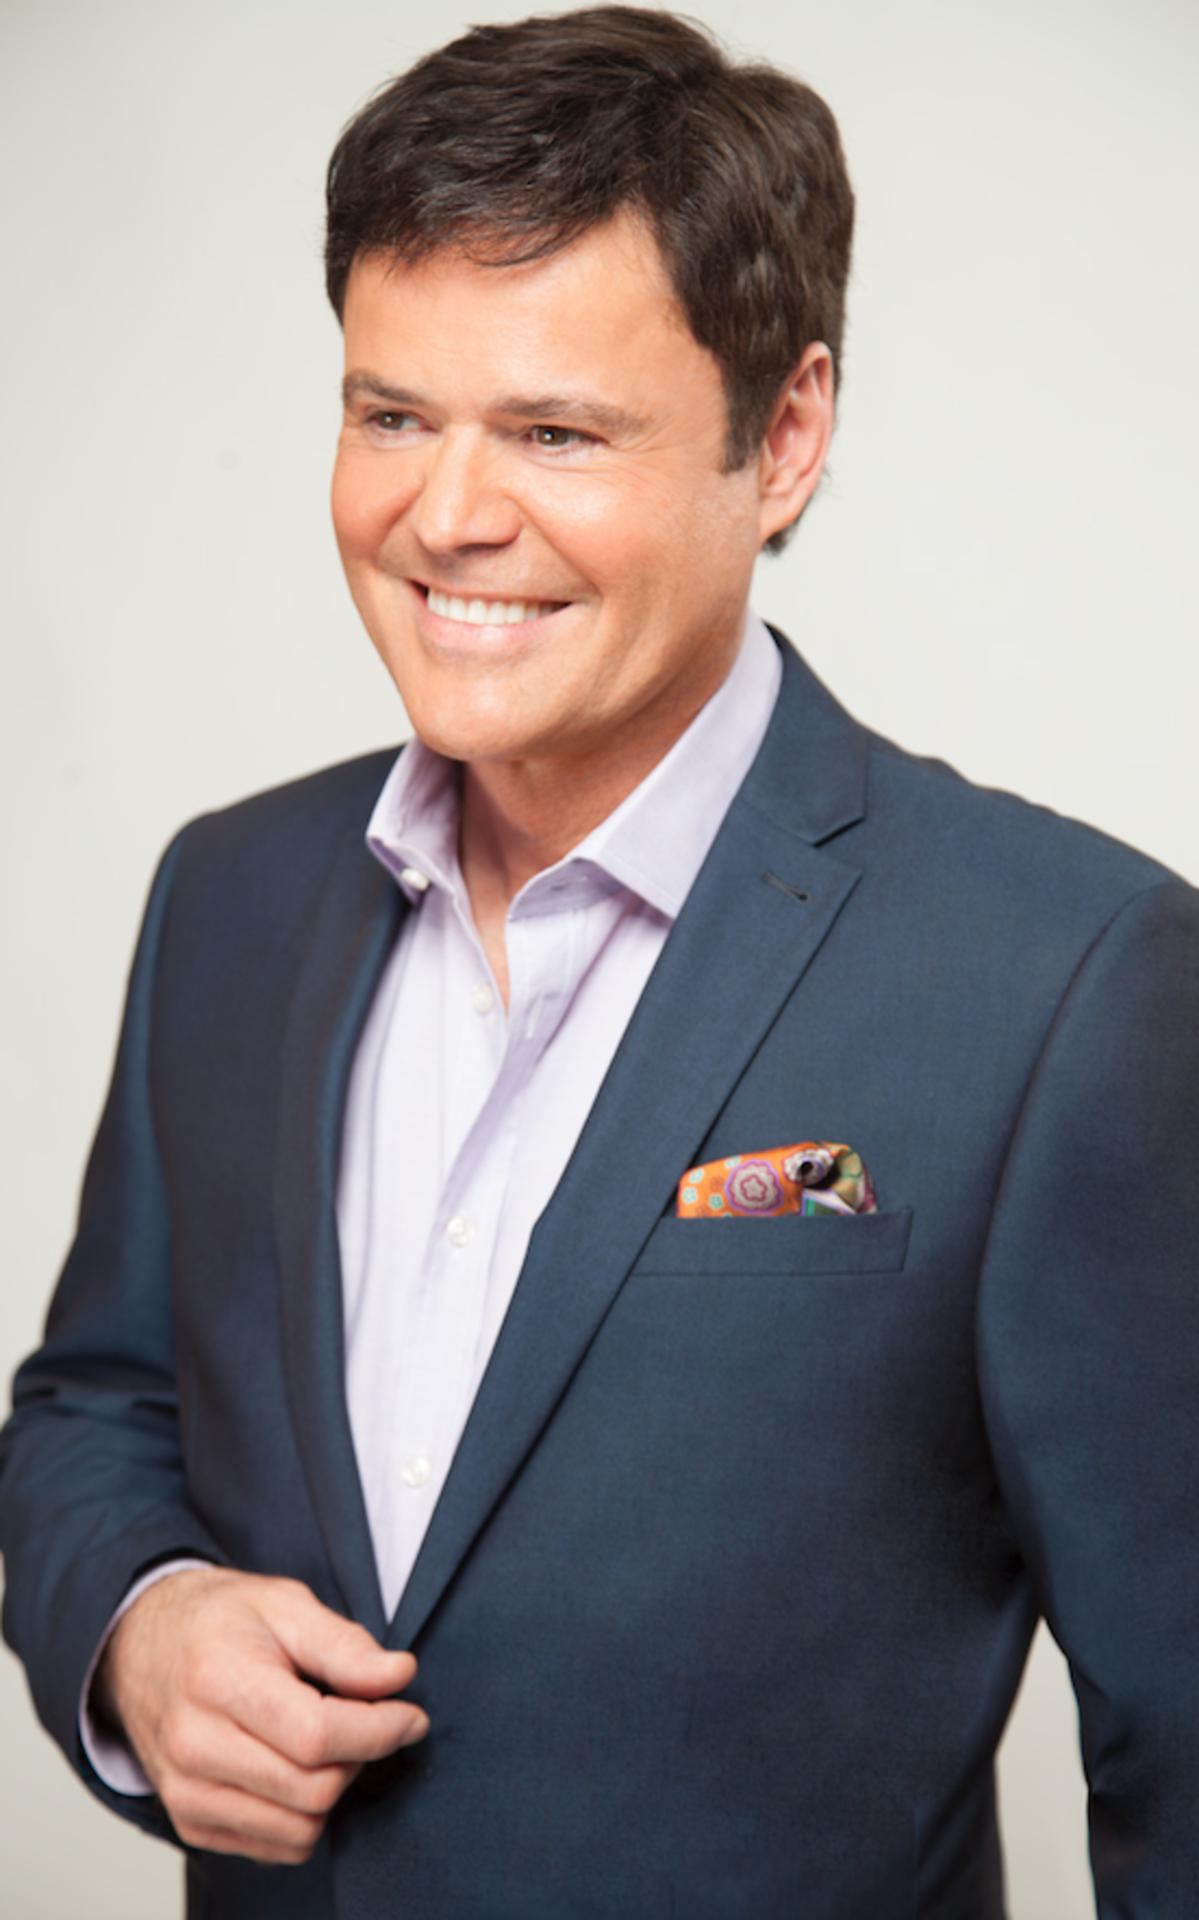 Donny Osmond